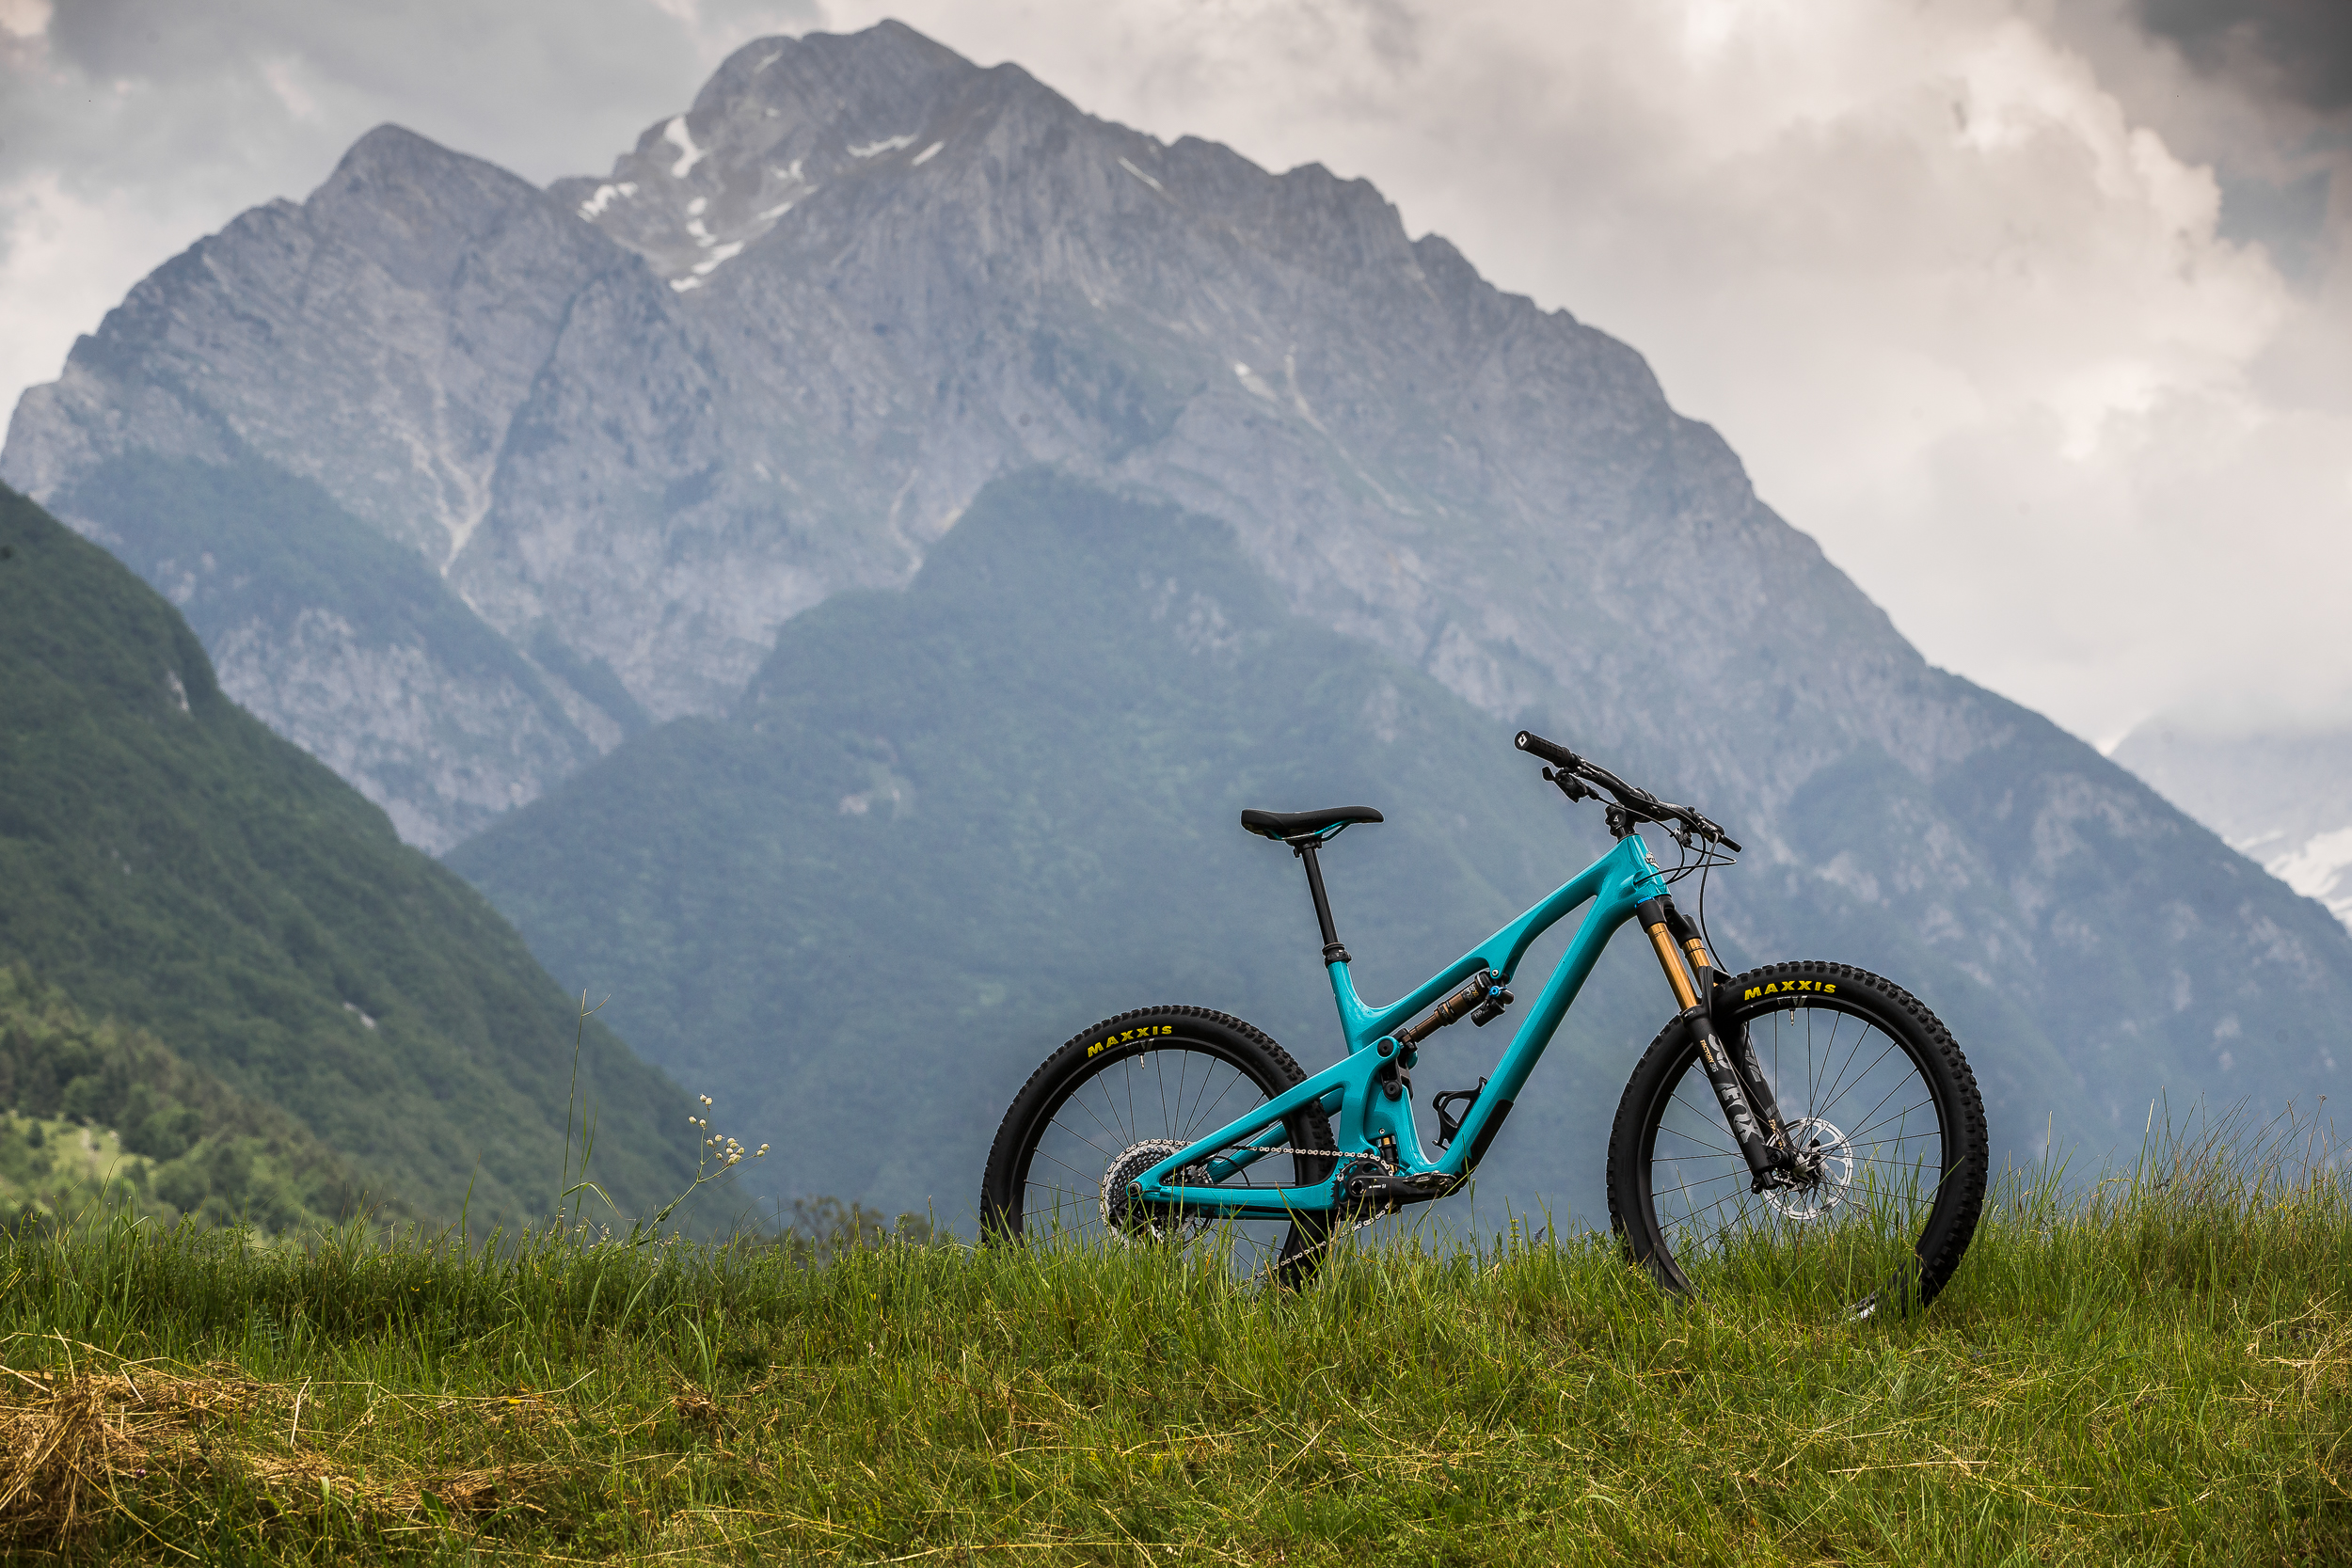 Long-travel 29ers might be in fashion right now, but the SB140 makes it clear there's still a place for a fast and playful 27.5-inch trail bike.